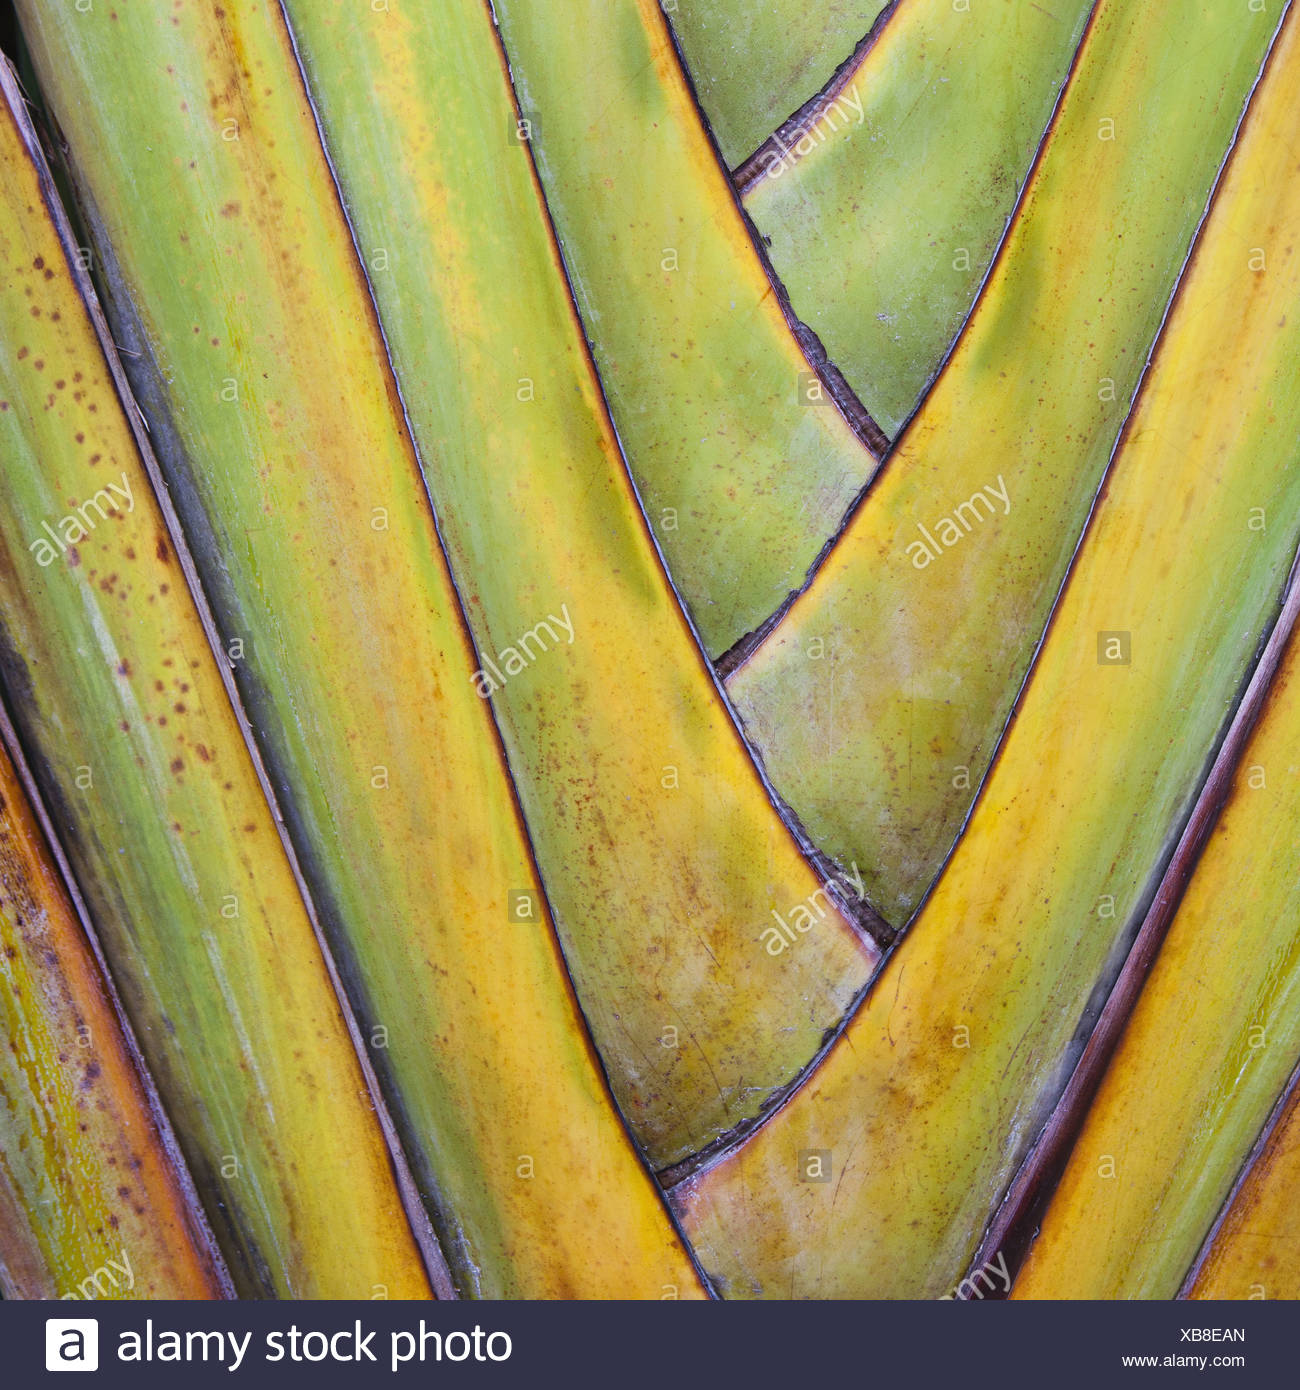 Tulum Mexique. Traveller's Palm ou fan palm tree leaf tiges Photo Stock